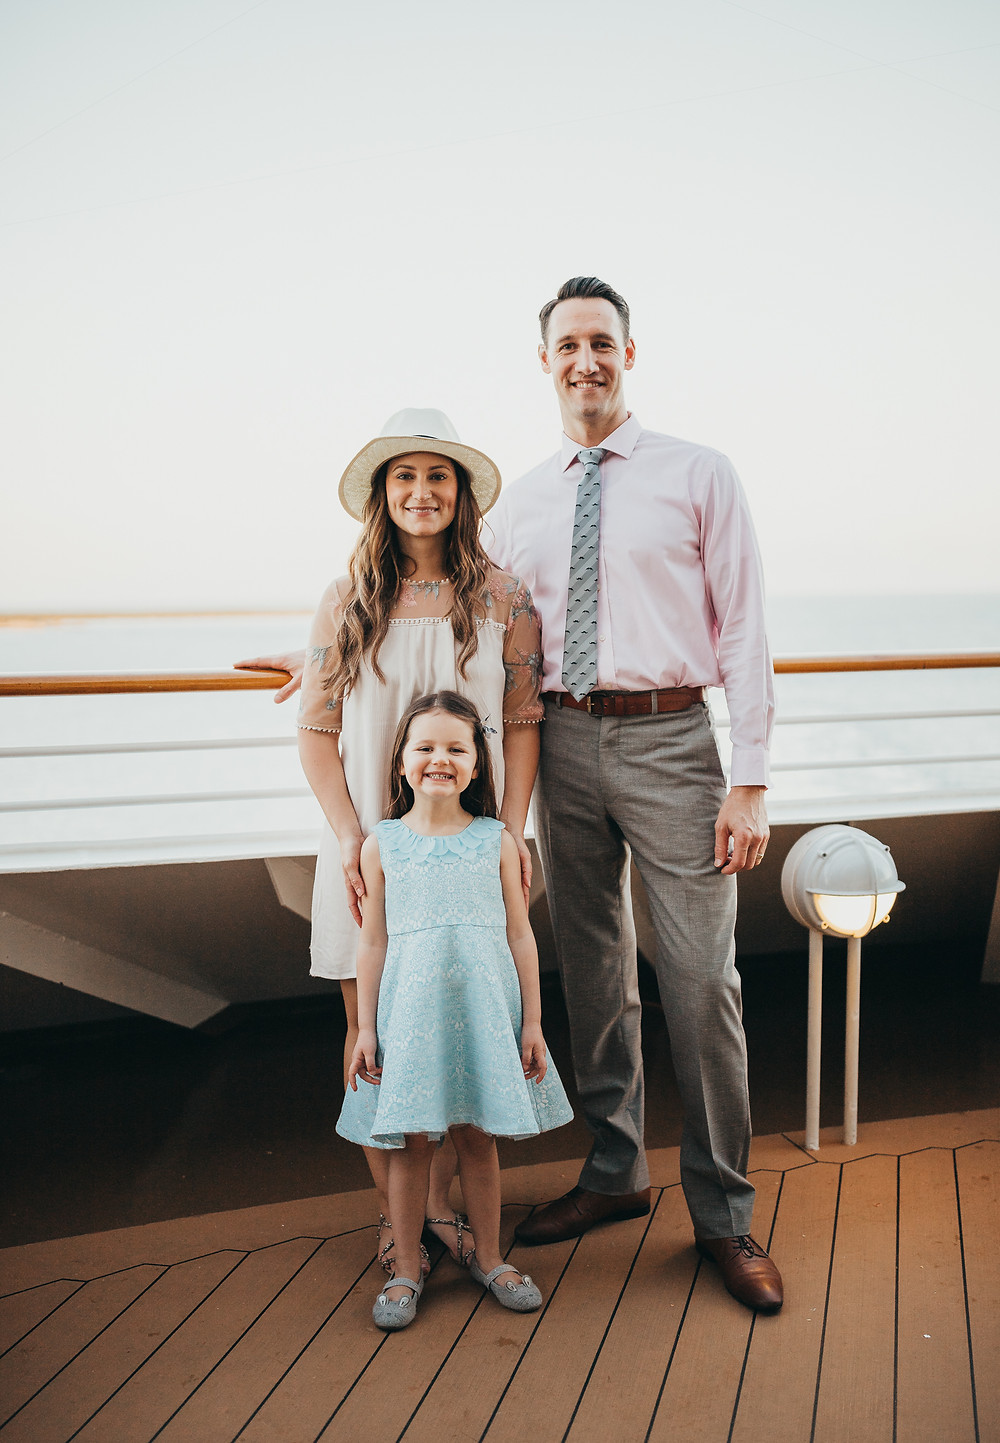 A family of three dressed up nicely on a cruise ship deck.